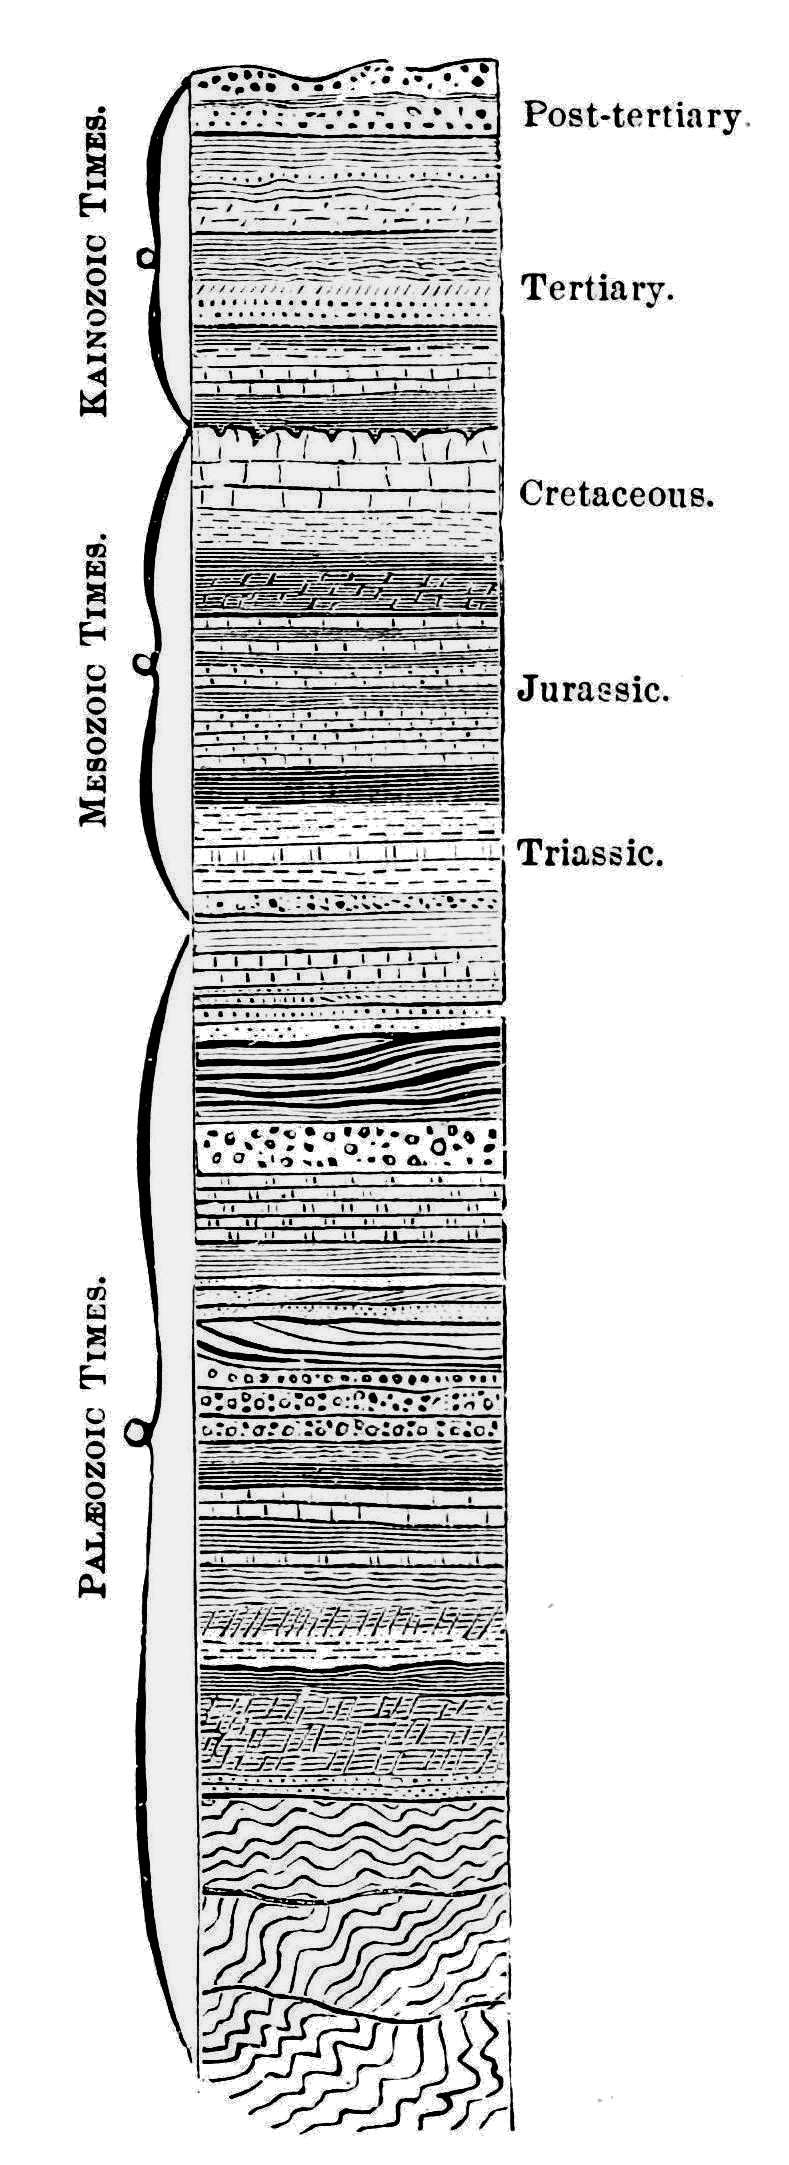 PSM V34 D483 Geologic time scale of earth.jpg